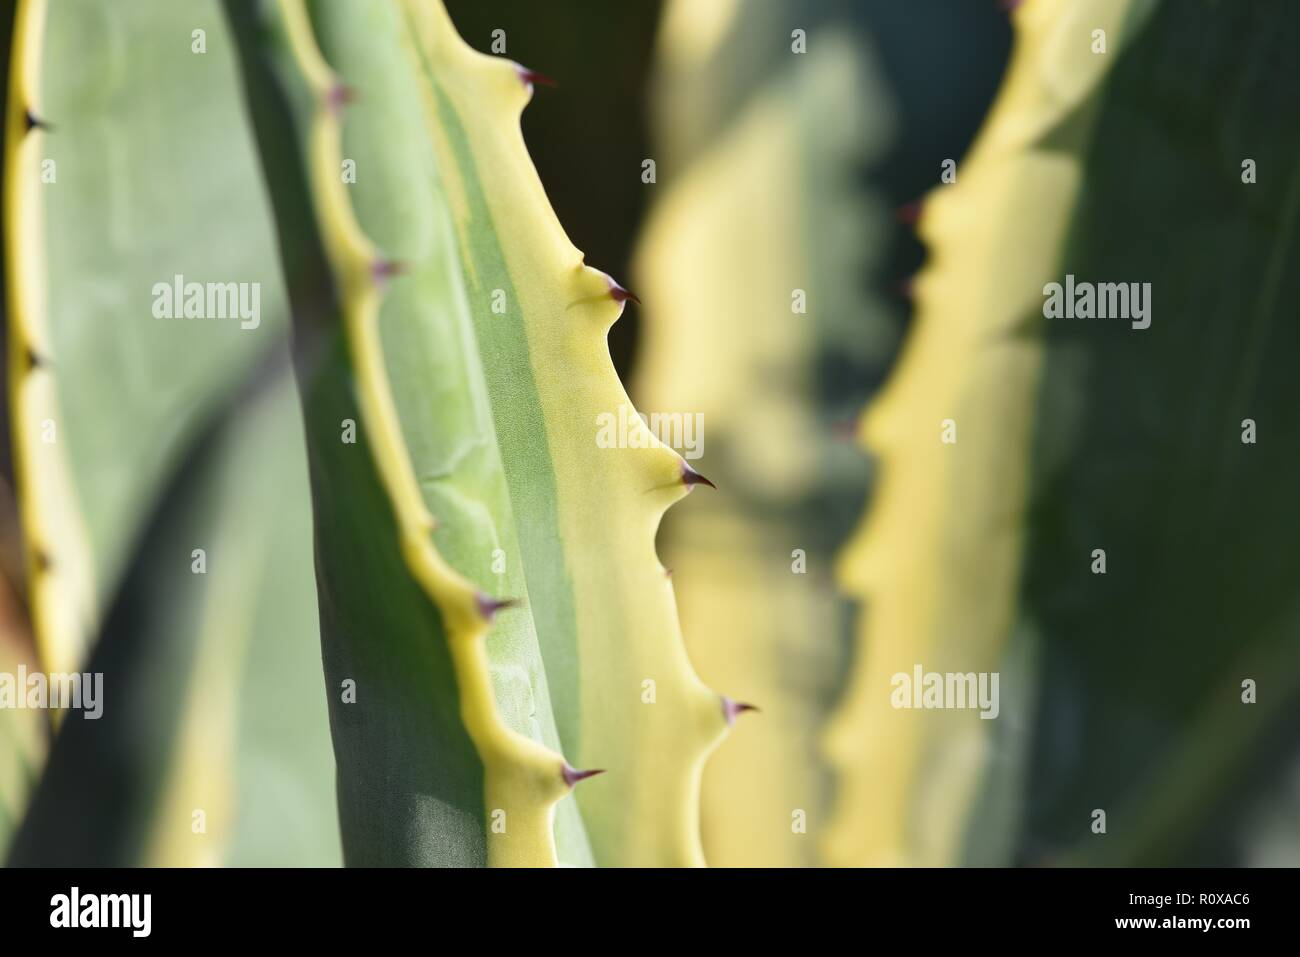 Agave americana variegata: the ridgid tongues of an Agave plant - Stock Image